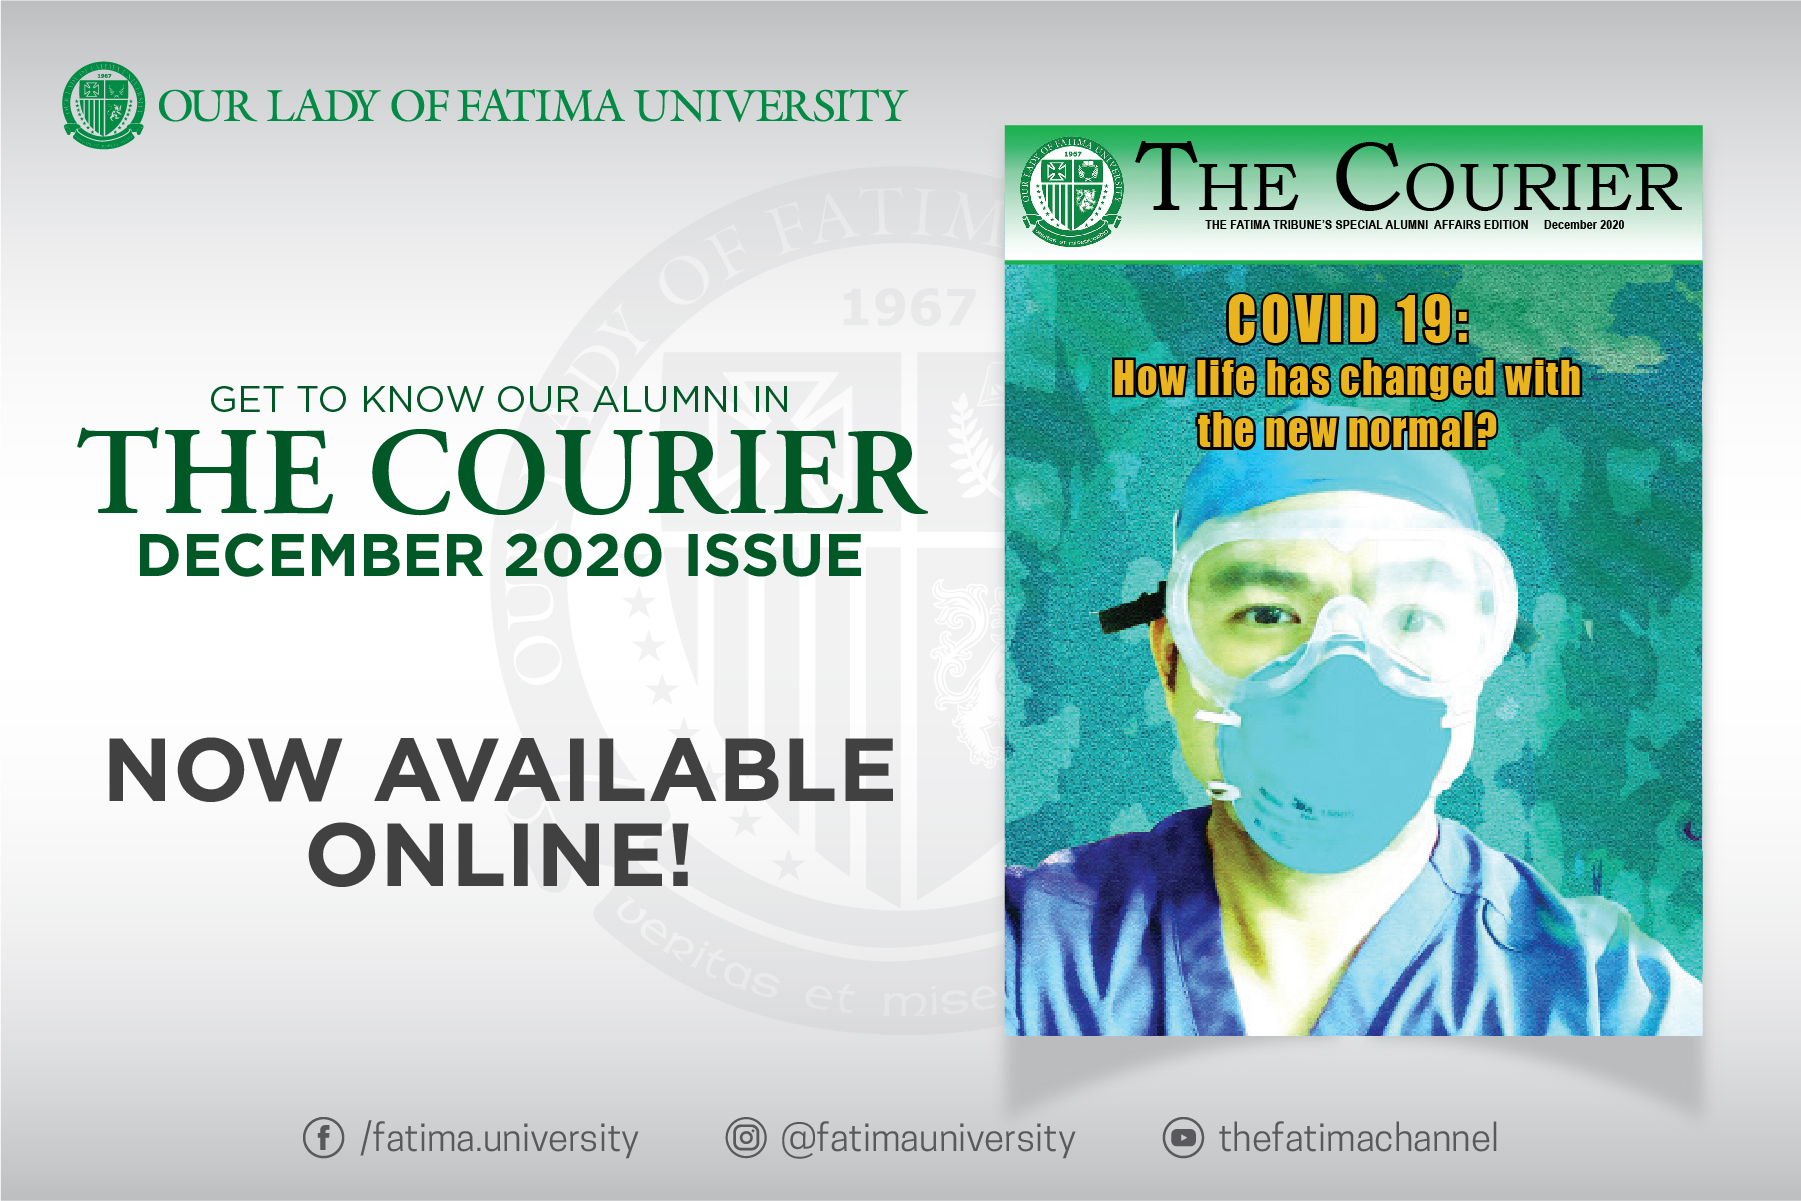 The Courier's December 2020 Issue, Now Available Online